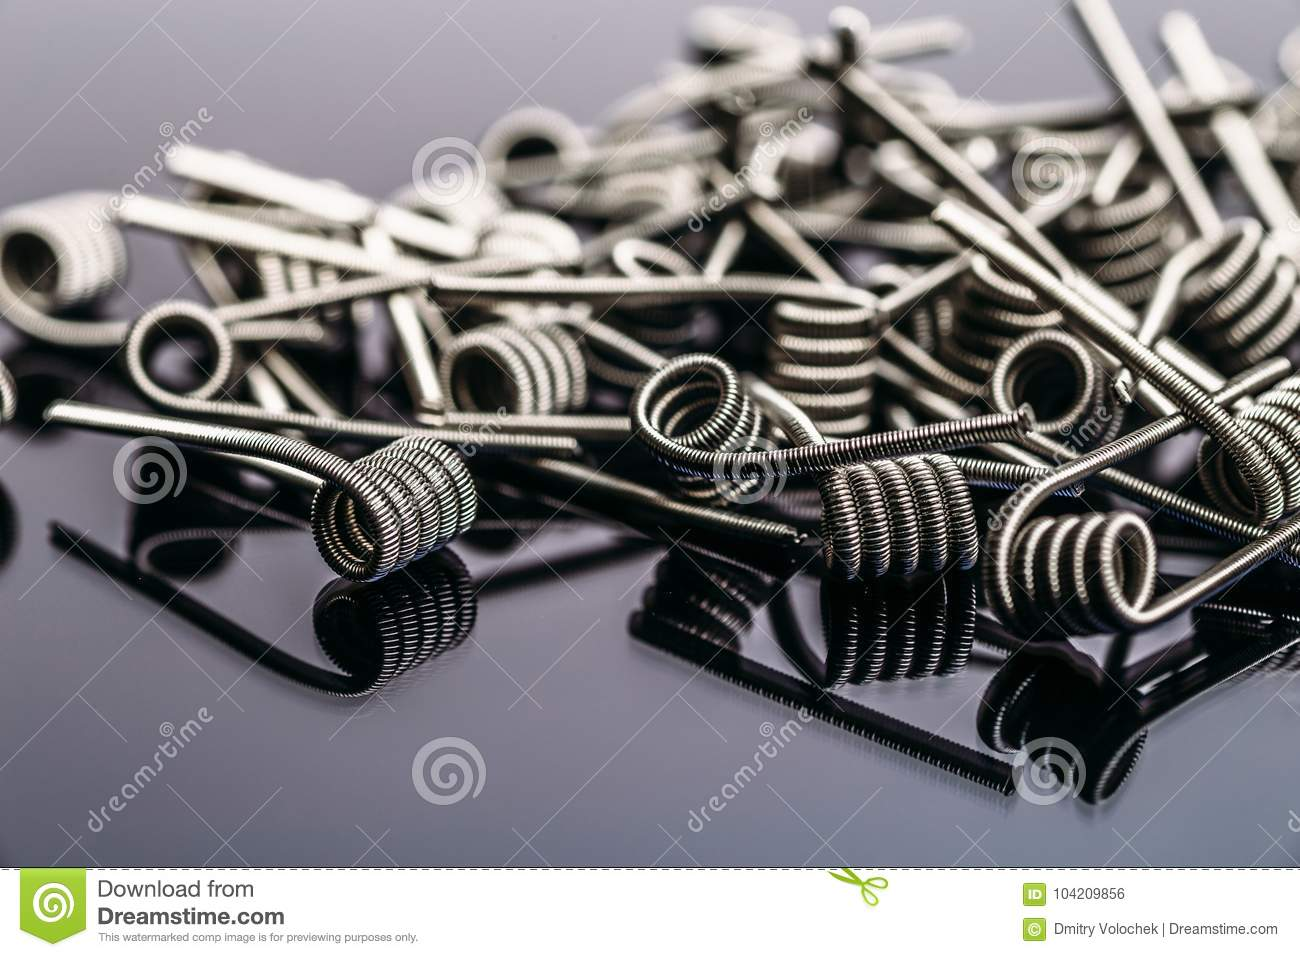 Group of Fussed Clapton Coils for vape or e-cig dripping atomizers or RDA